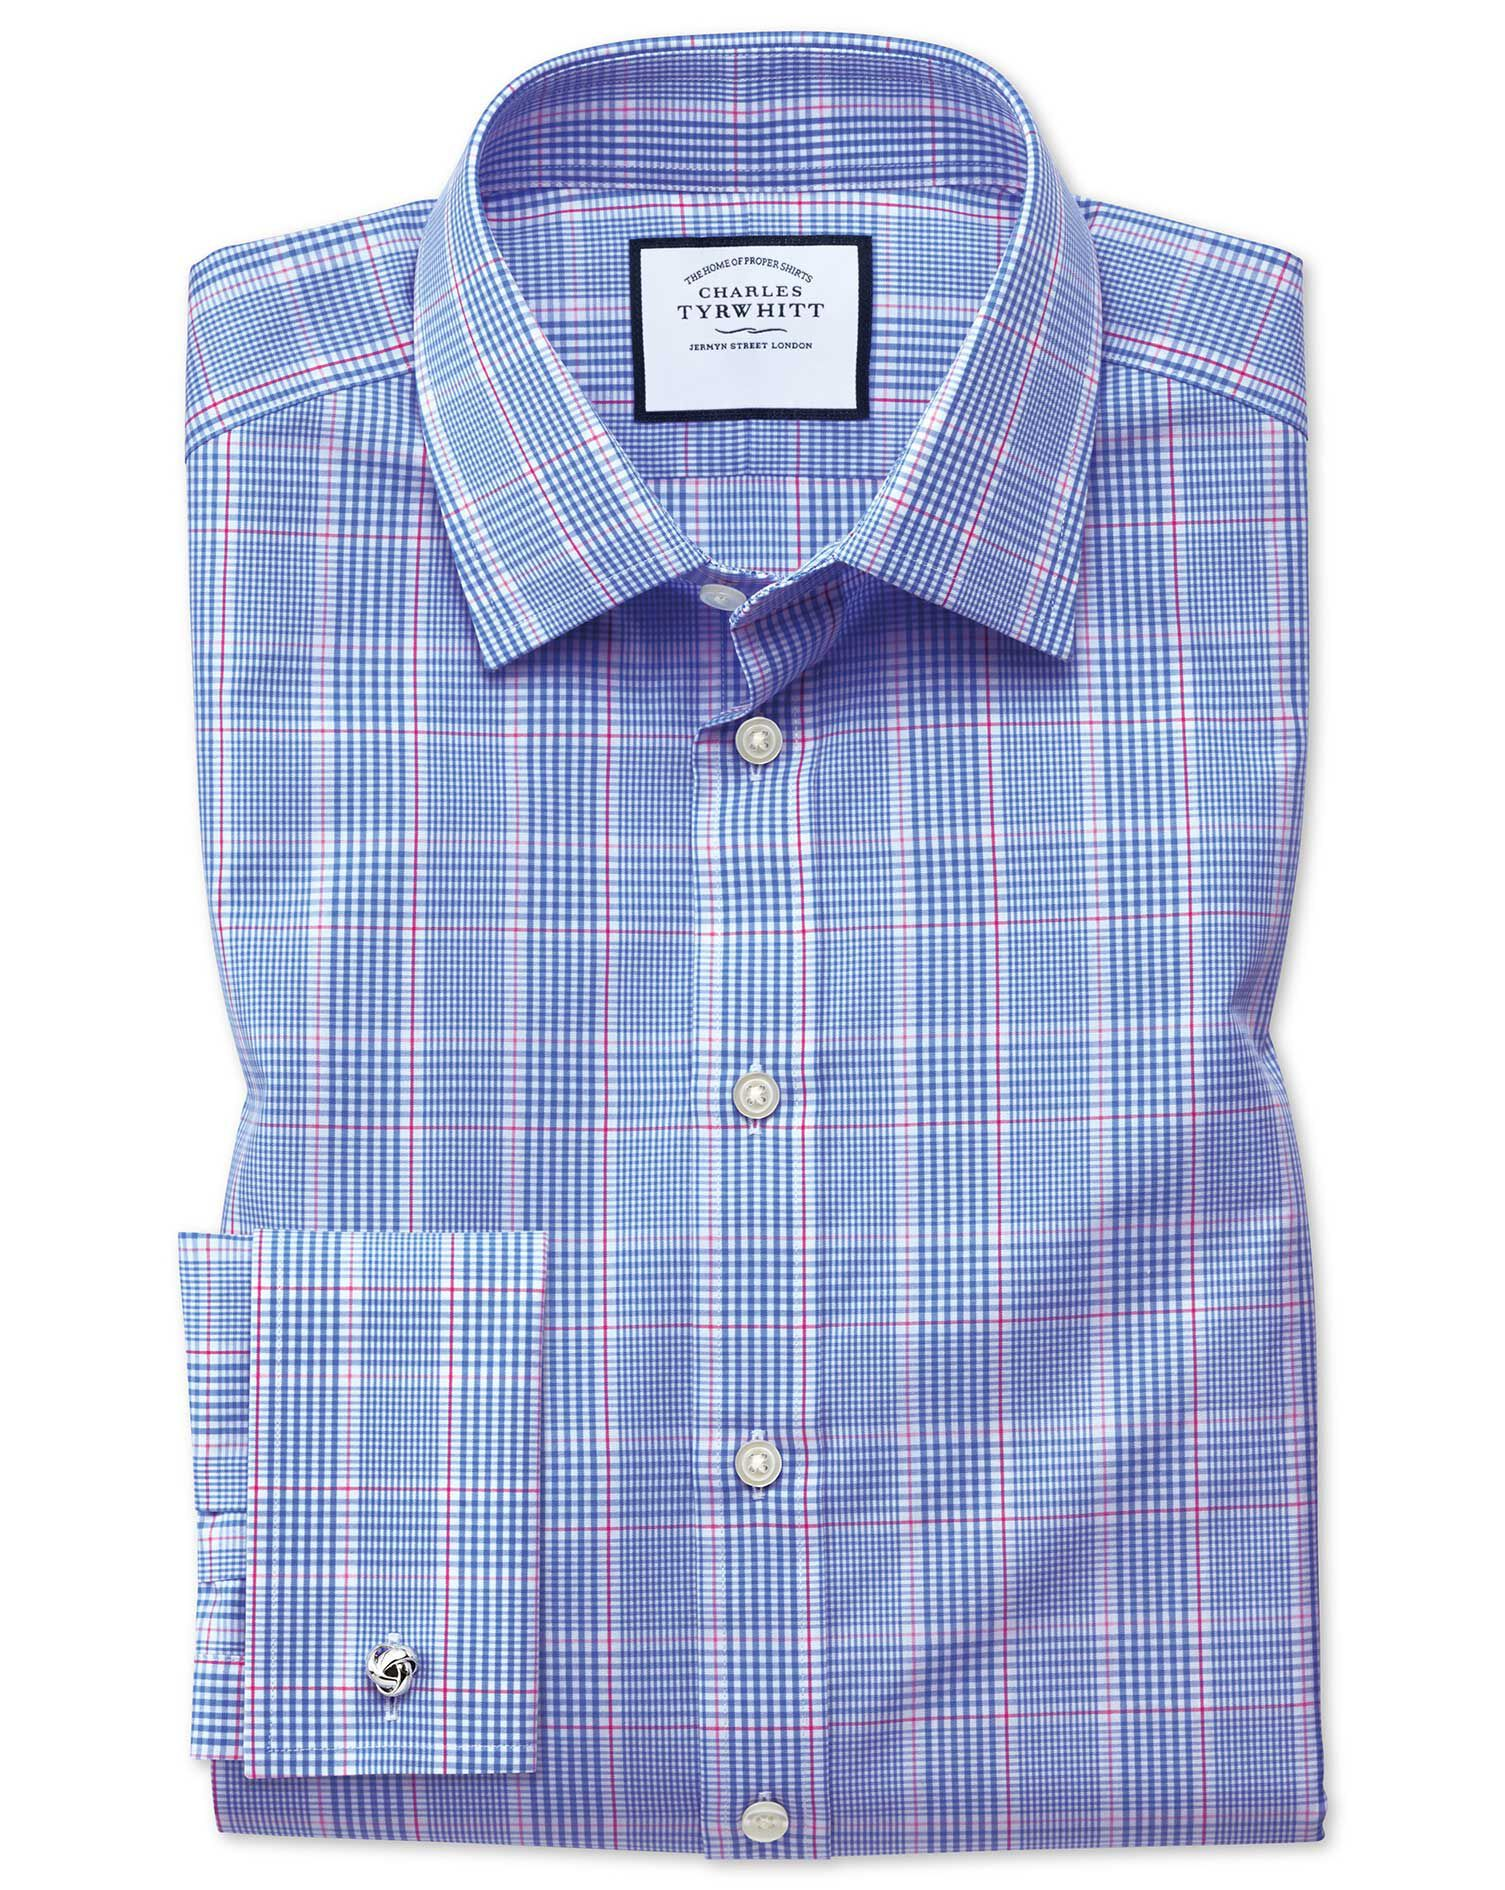 Extra Slim Fit Prince Of Wales Blue Cotton Formal Shirt Double Cuff Size 15.5/37 by Charles Tyrwhitt